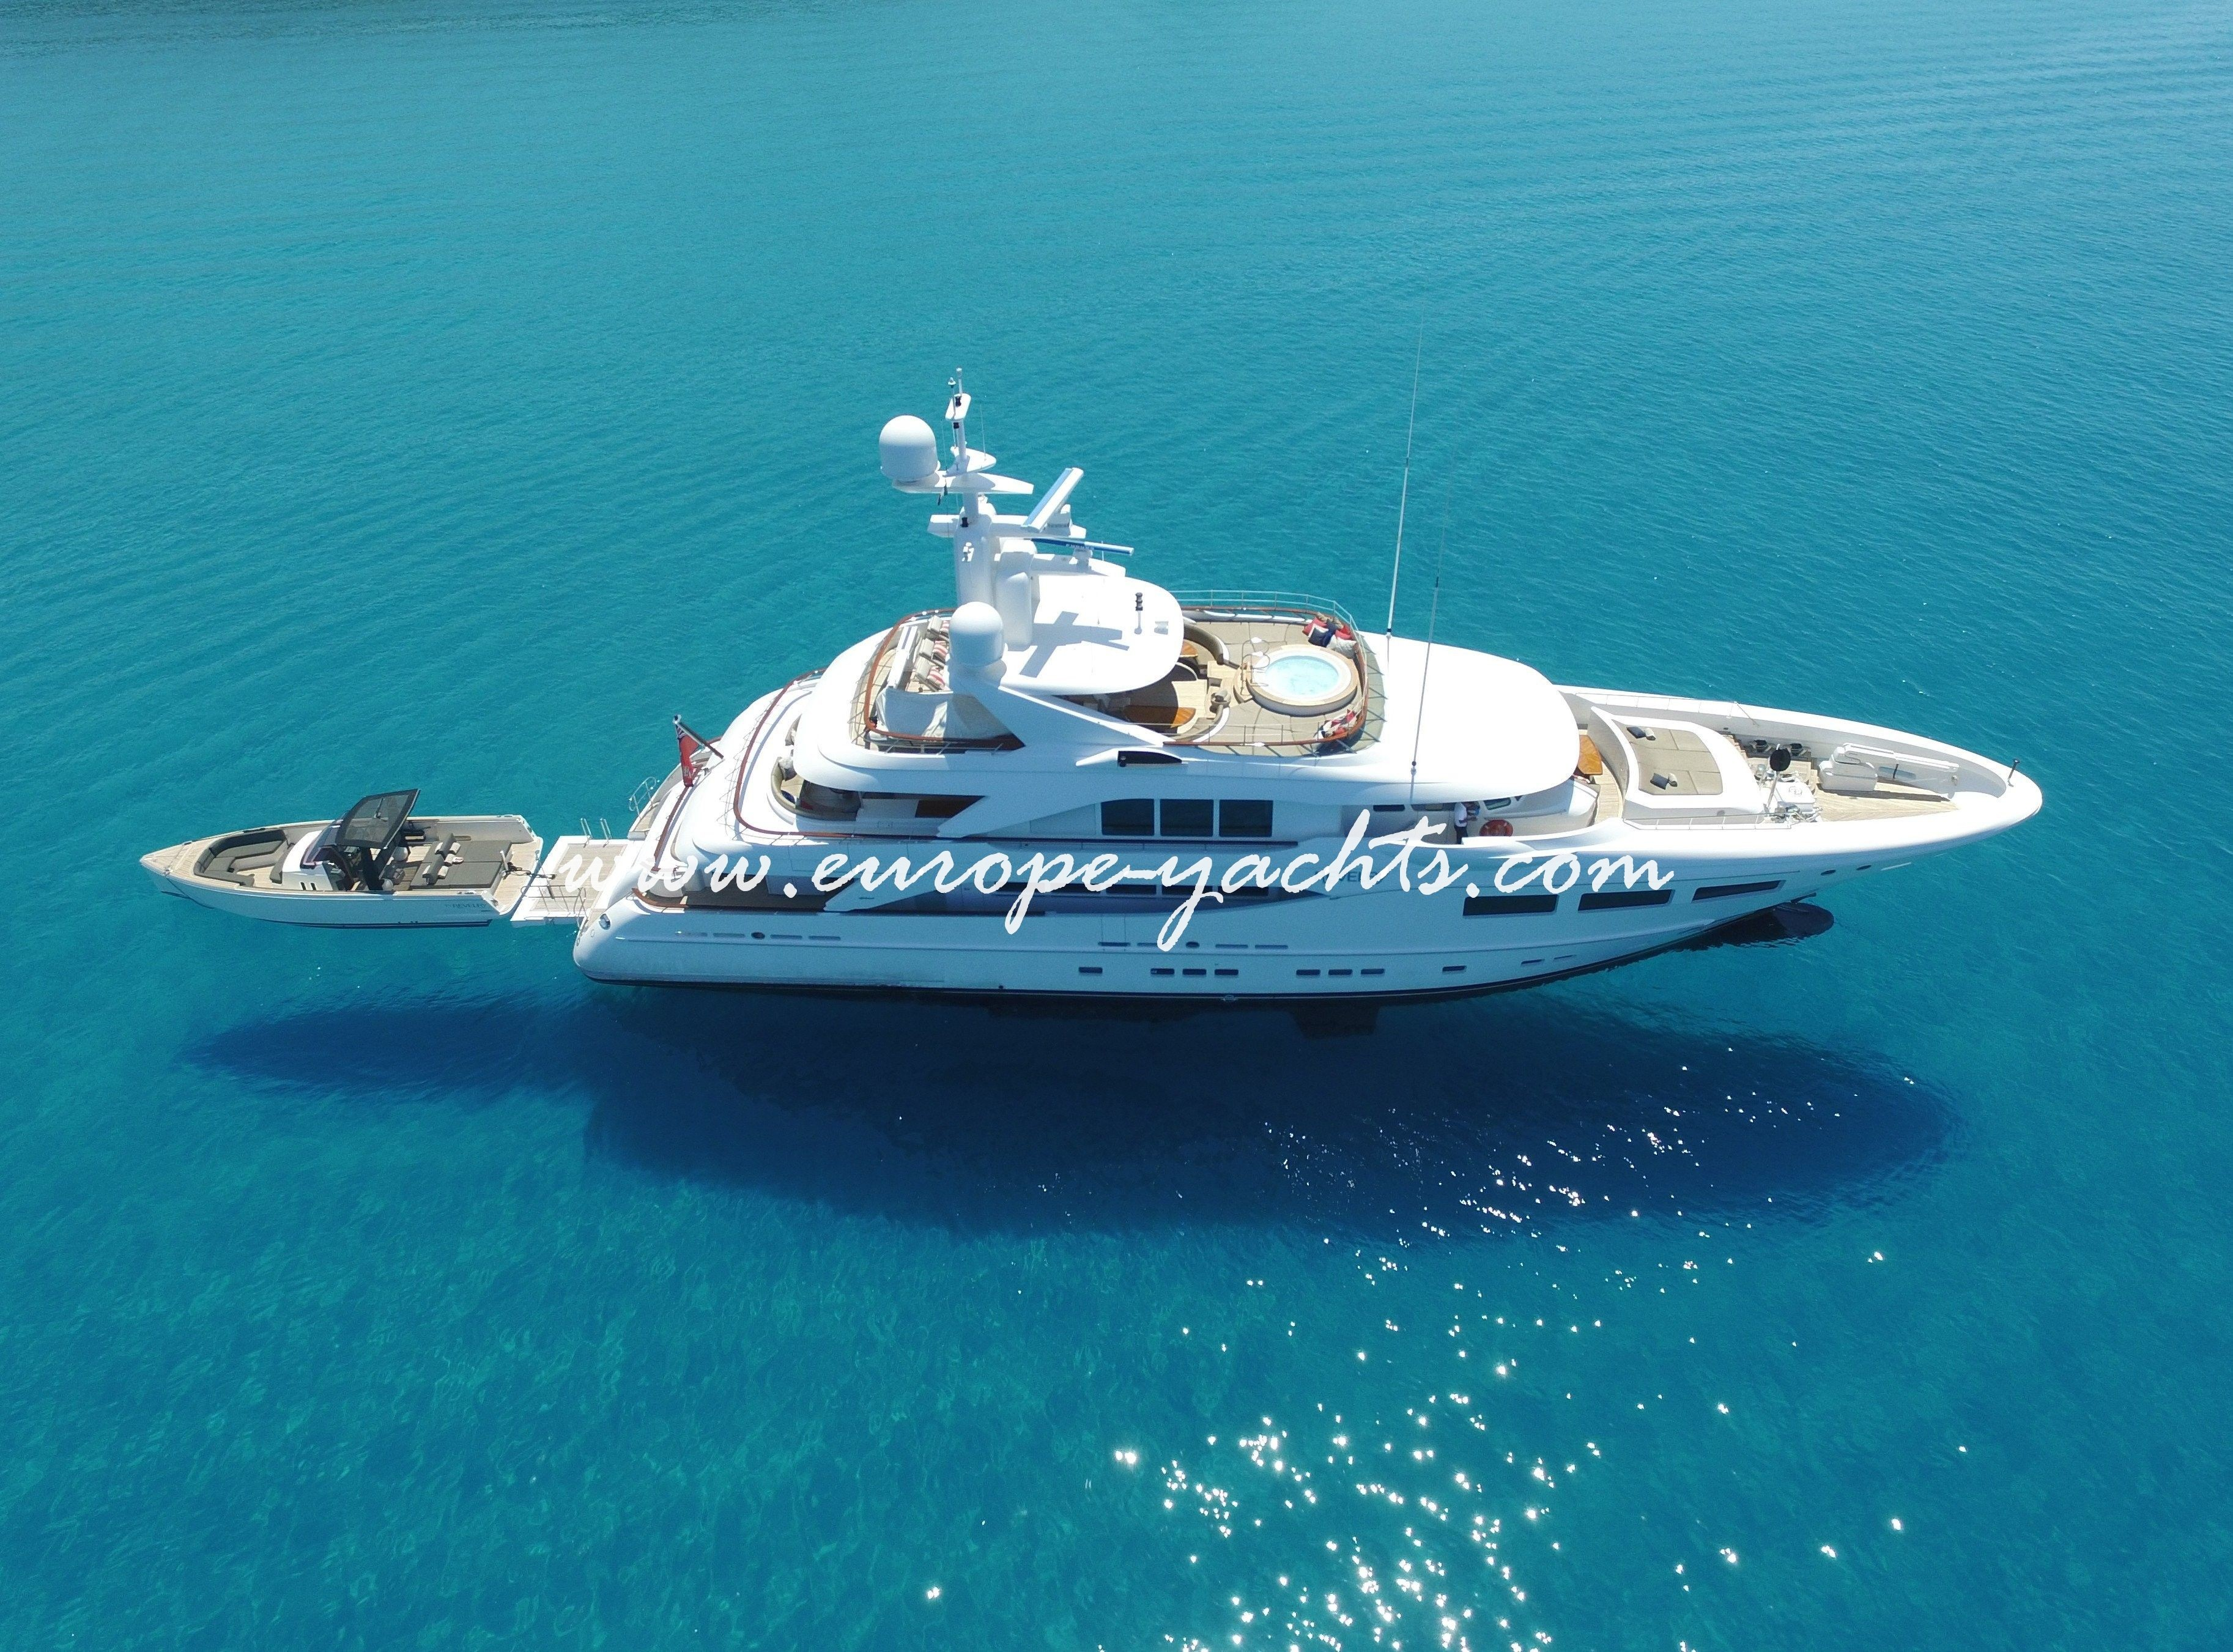 Revelry luxury yacht charter Croatia with Europe Yachts Charter